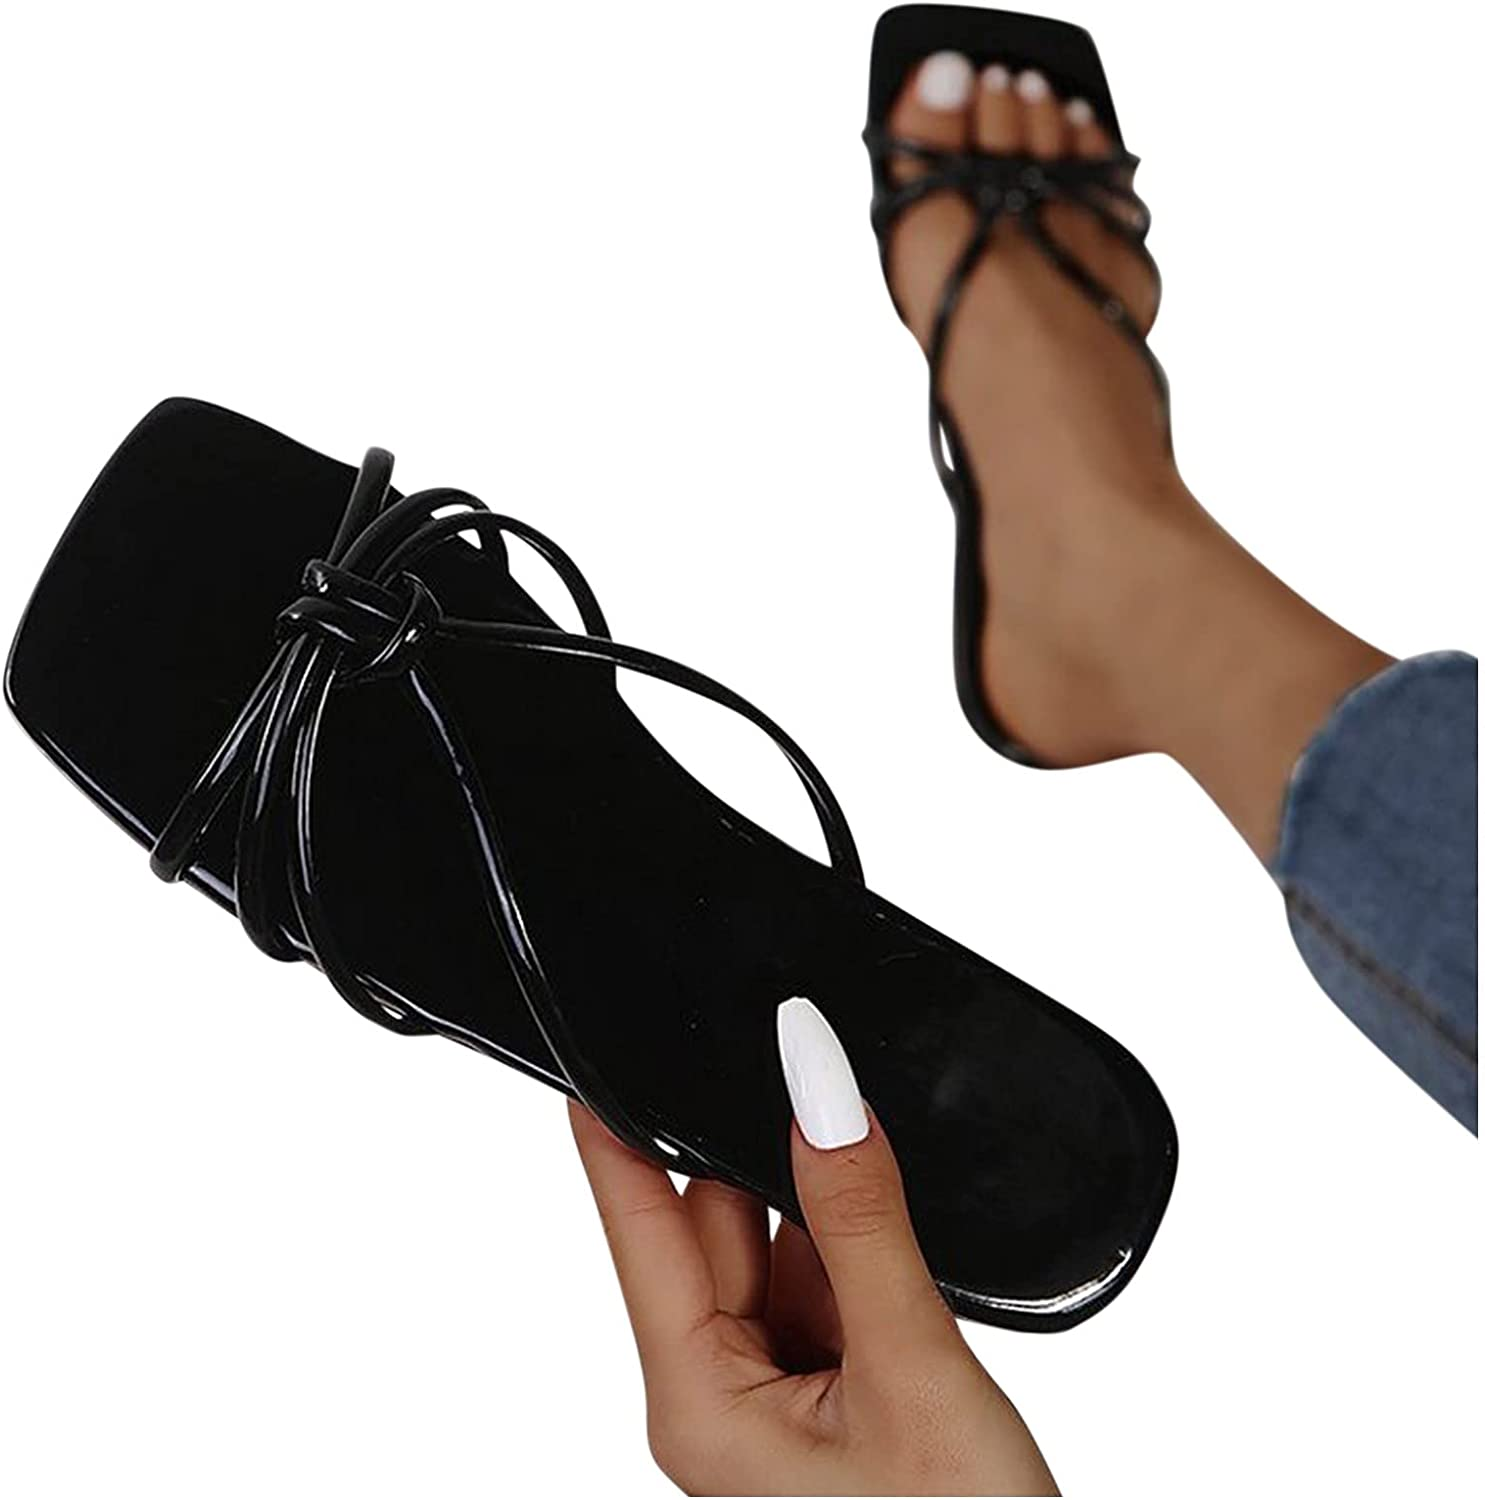 Goiwiejhg Sandals for Women Dressy Summer Solid Color Seasonal Wrap Introduction Size Cheap mail order shopping Large